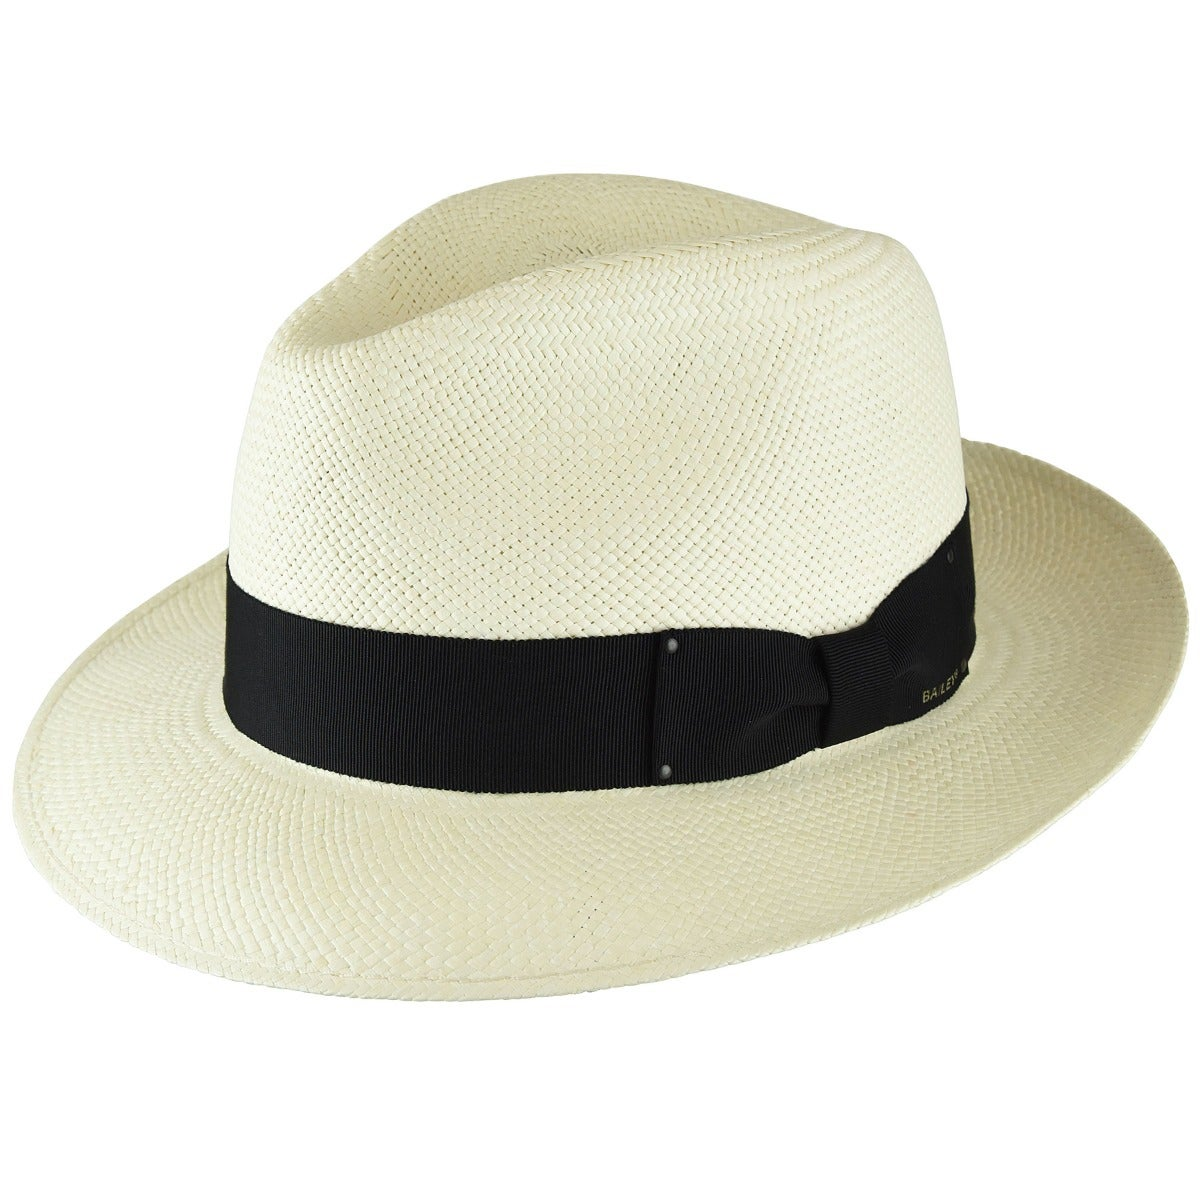 1950s Mens Hats | 50s Vintage Men's Hats Thurman Panama Fedora $155.00 AT vintagedancer.com